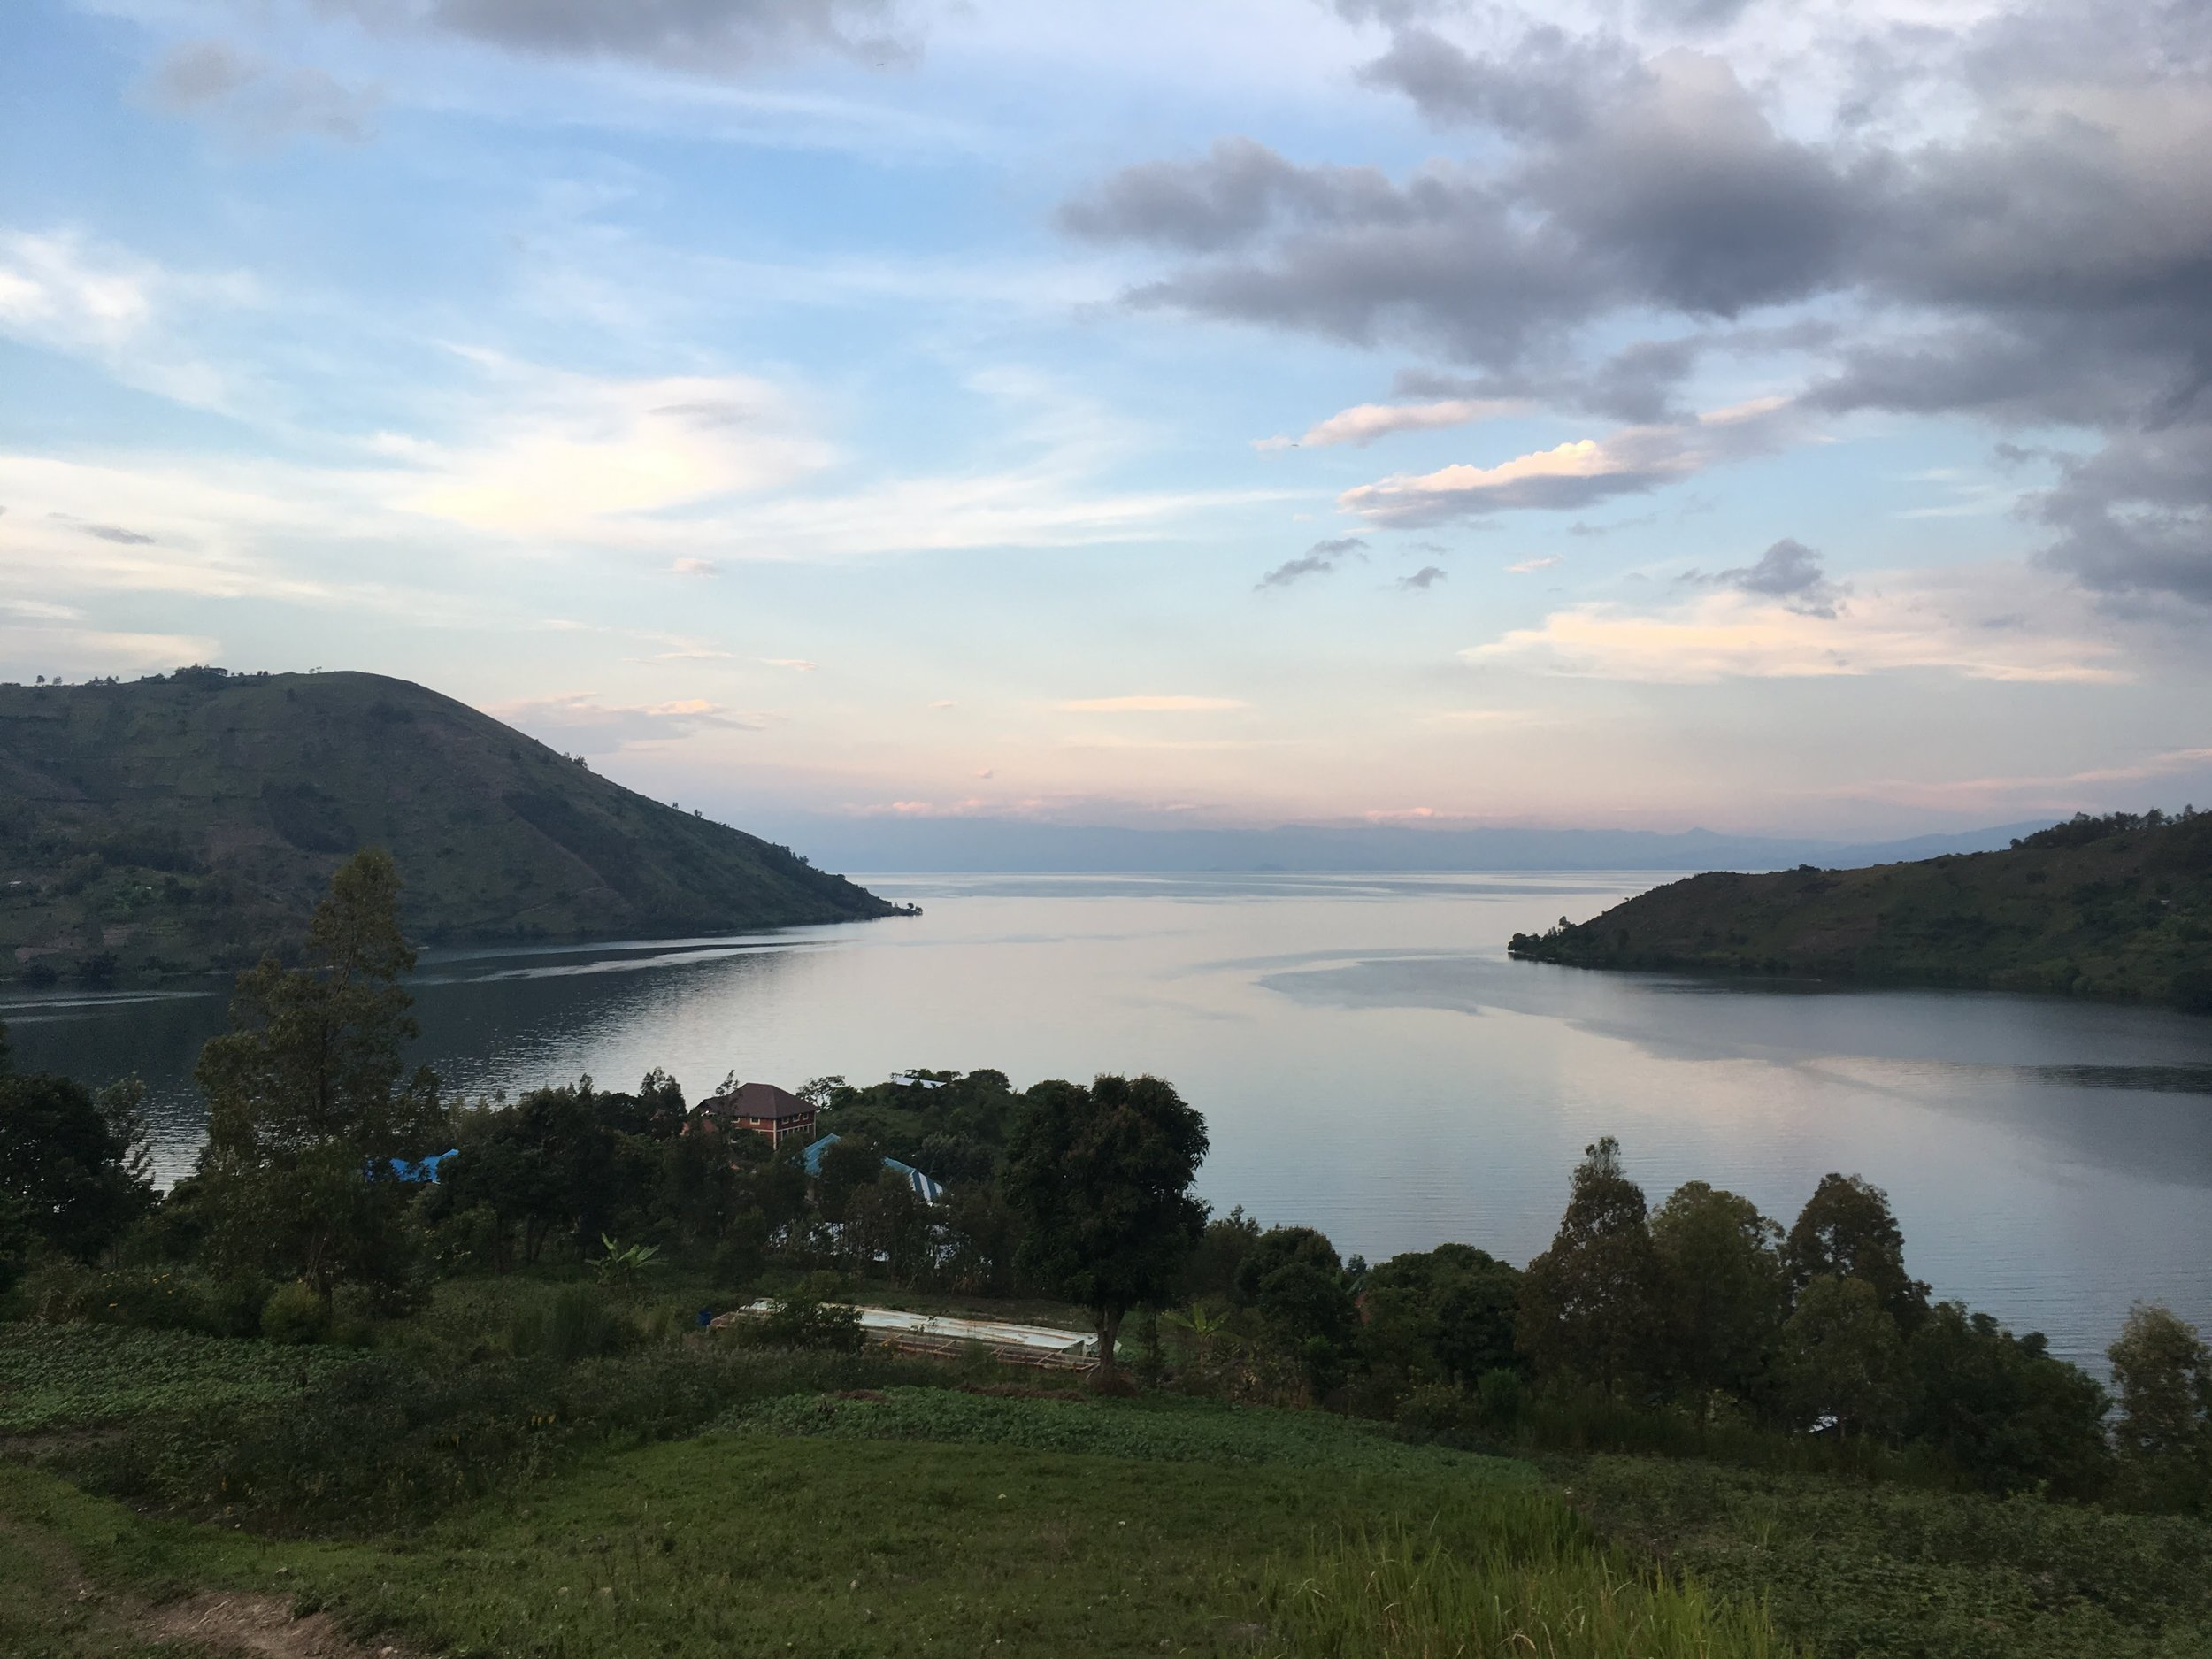 Another view of the lake and Rwanda in the back.